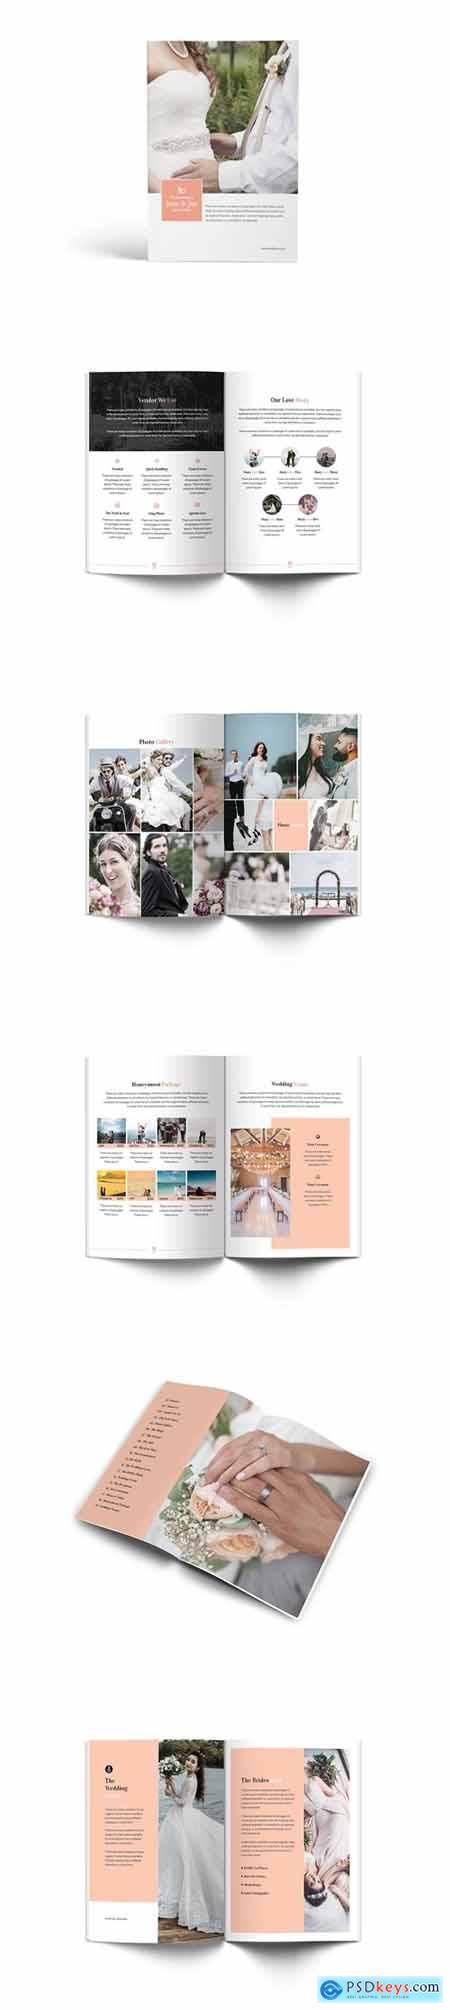 The Wedding A4 Brochure Template